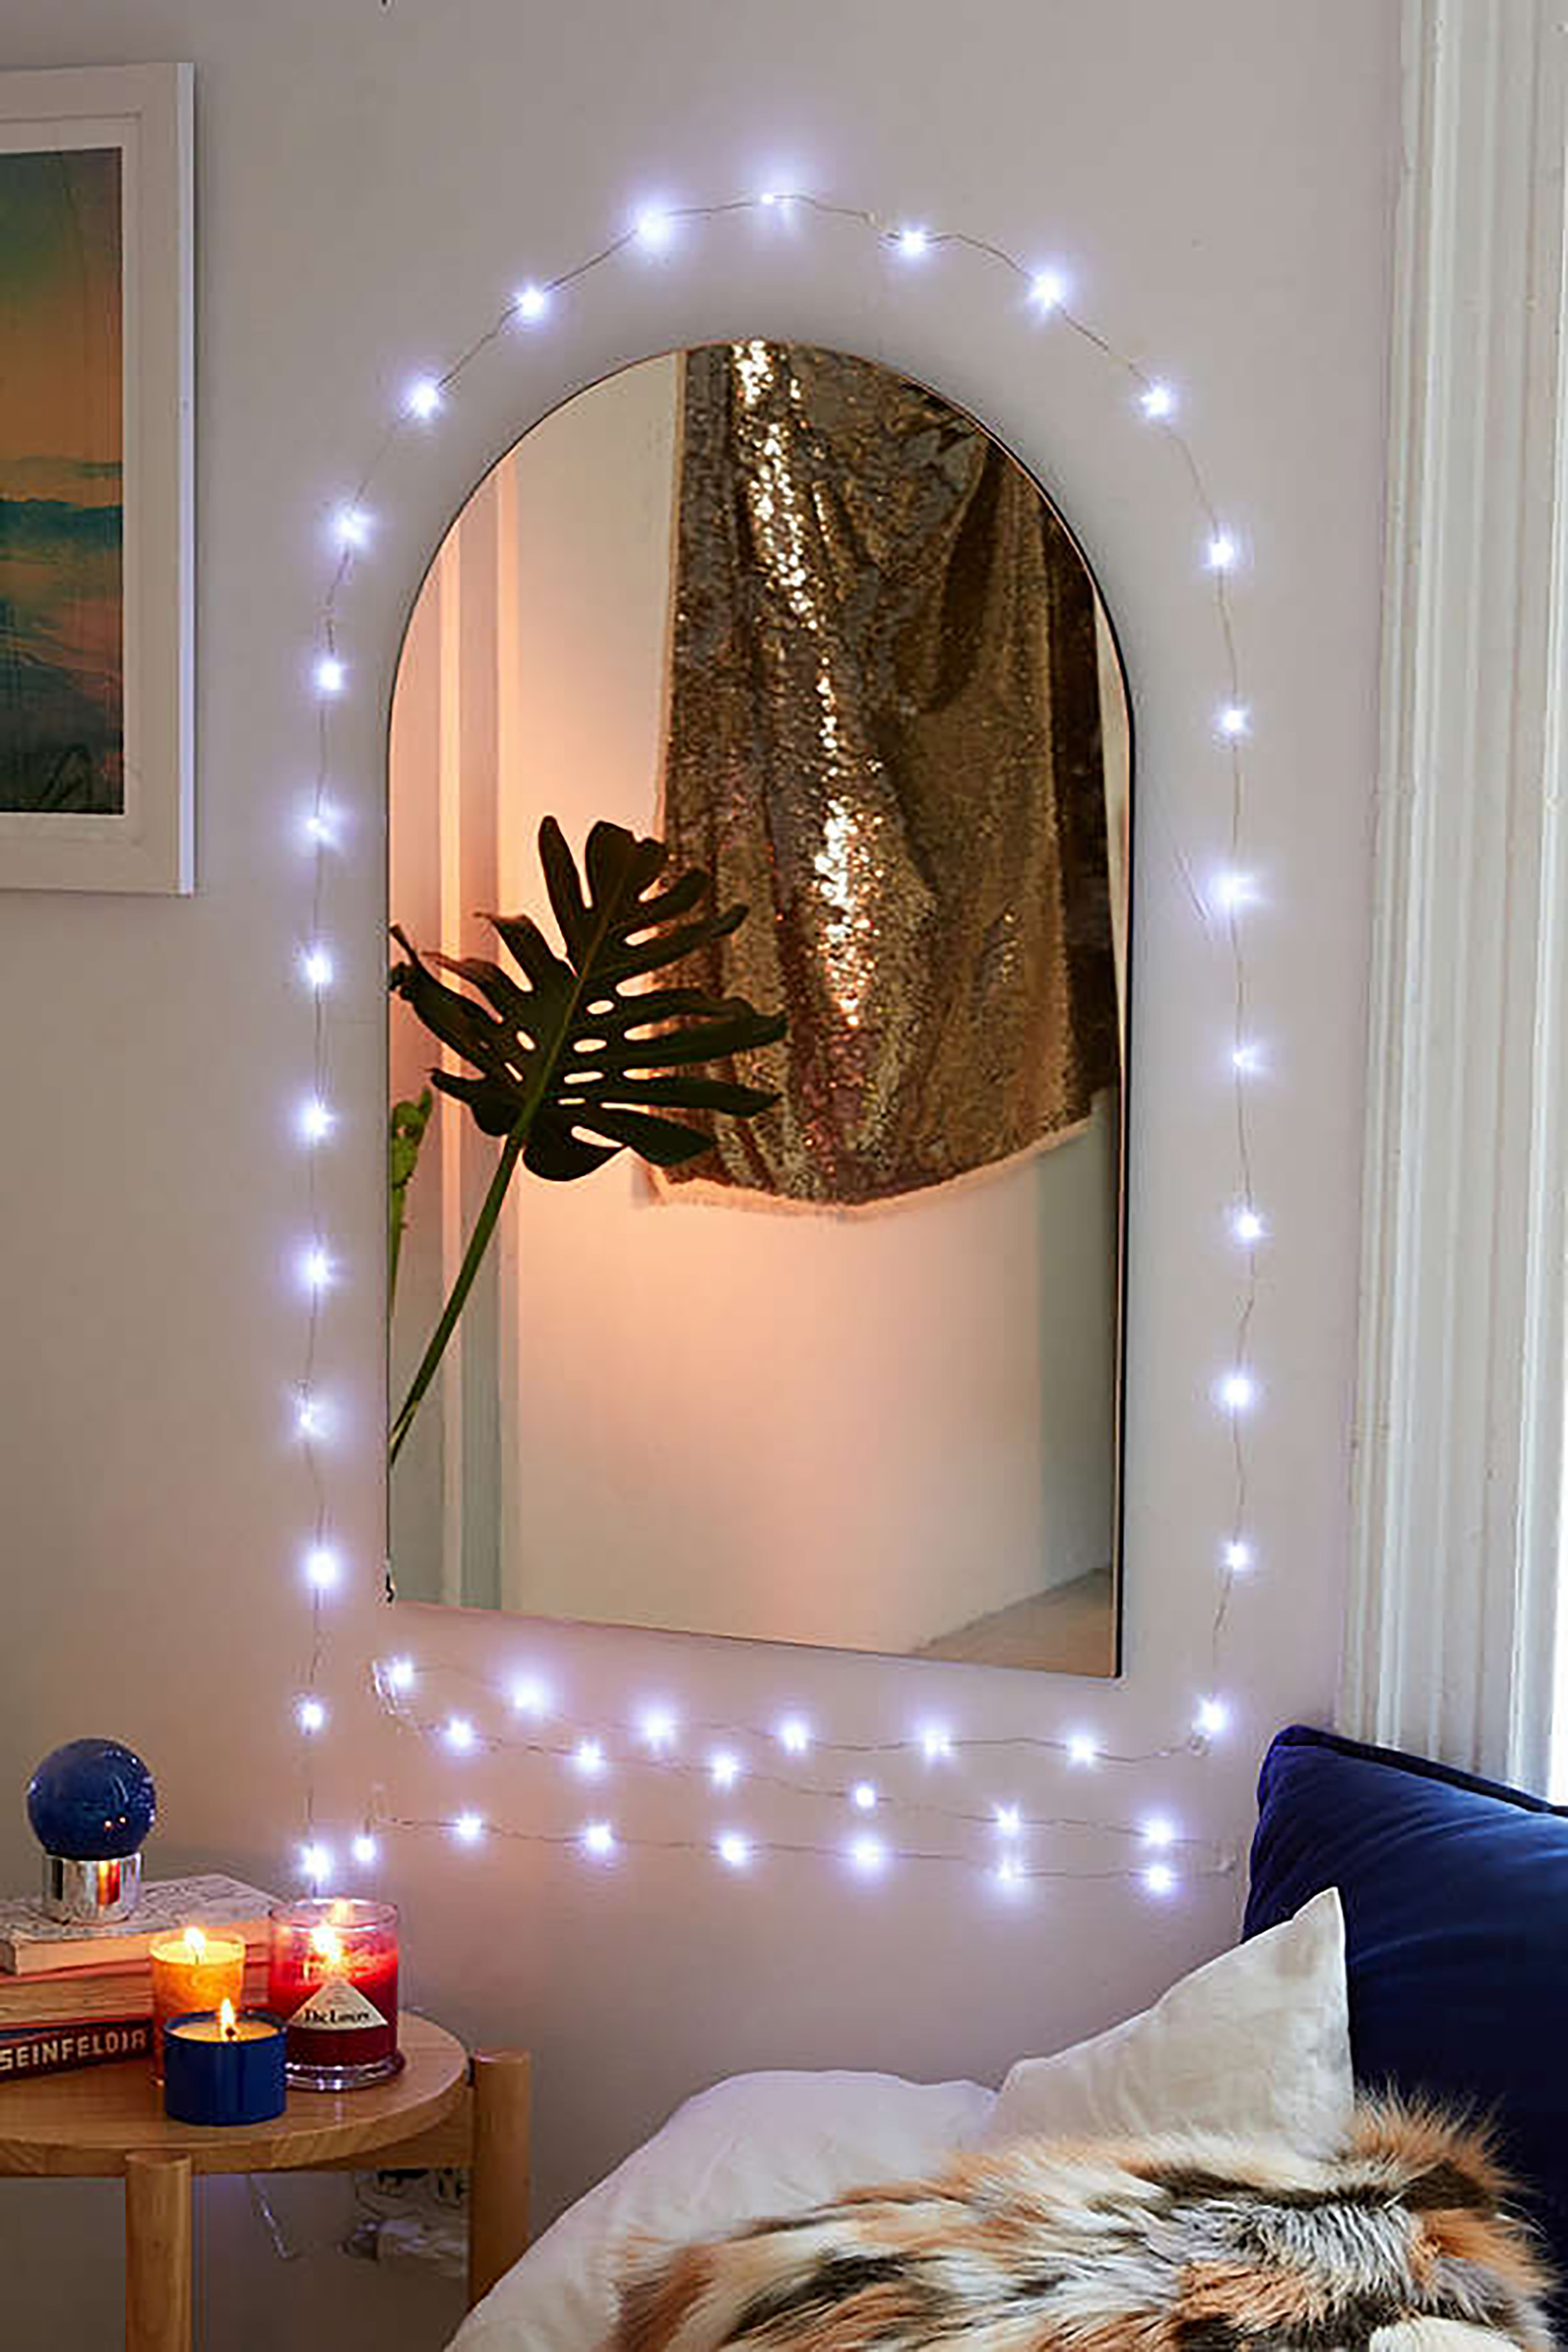 24 Ways to Decorate Your Home With Christmas Lights  Decorating Ideas with LED Lights